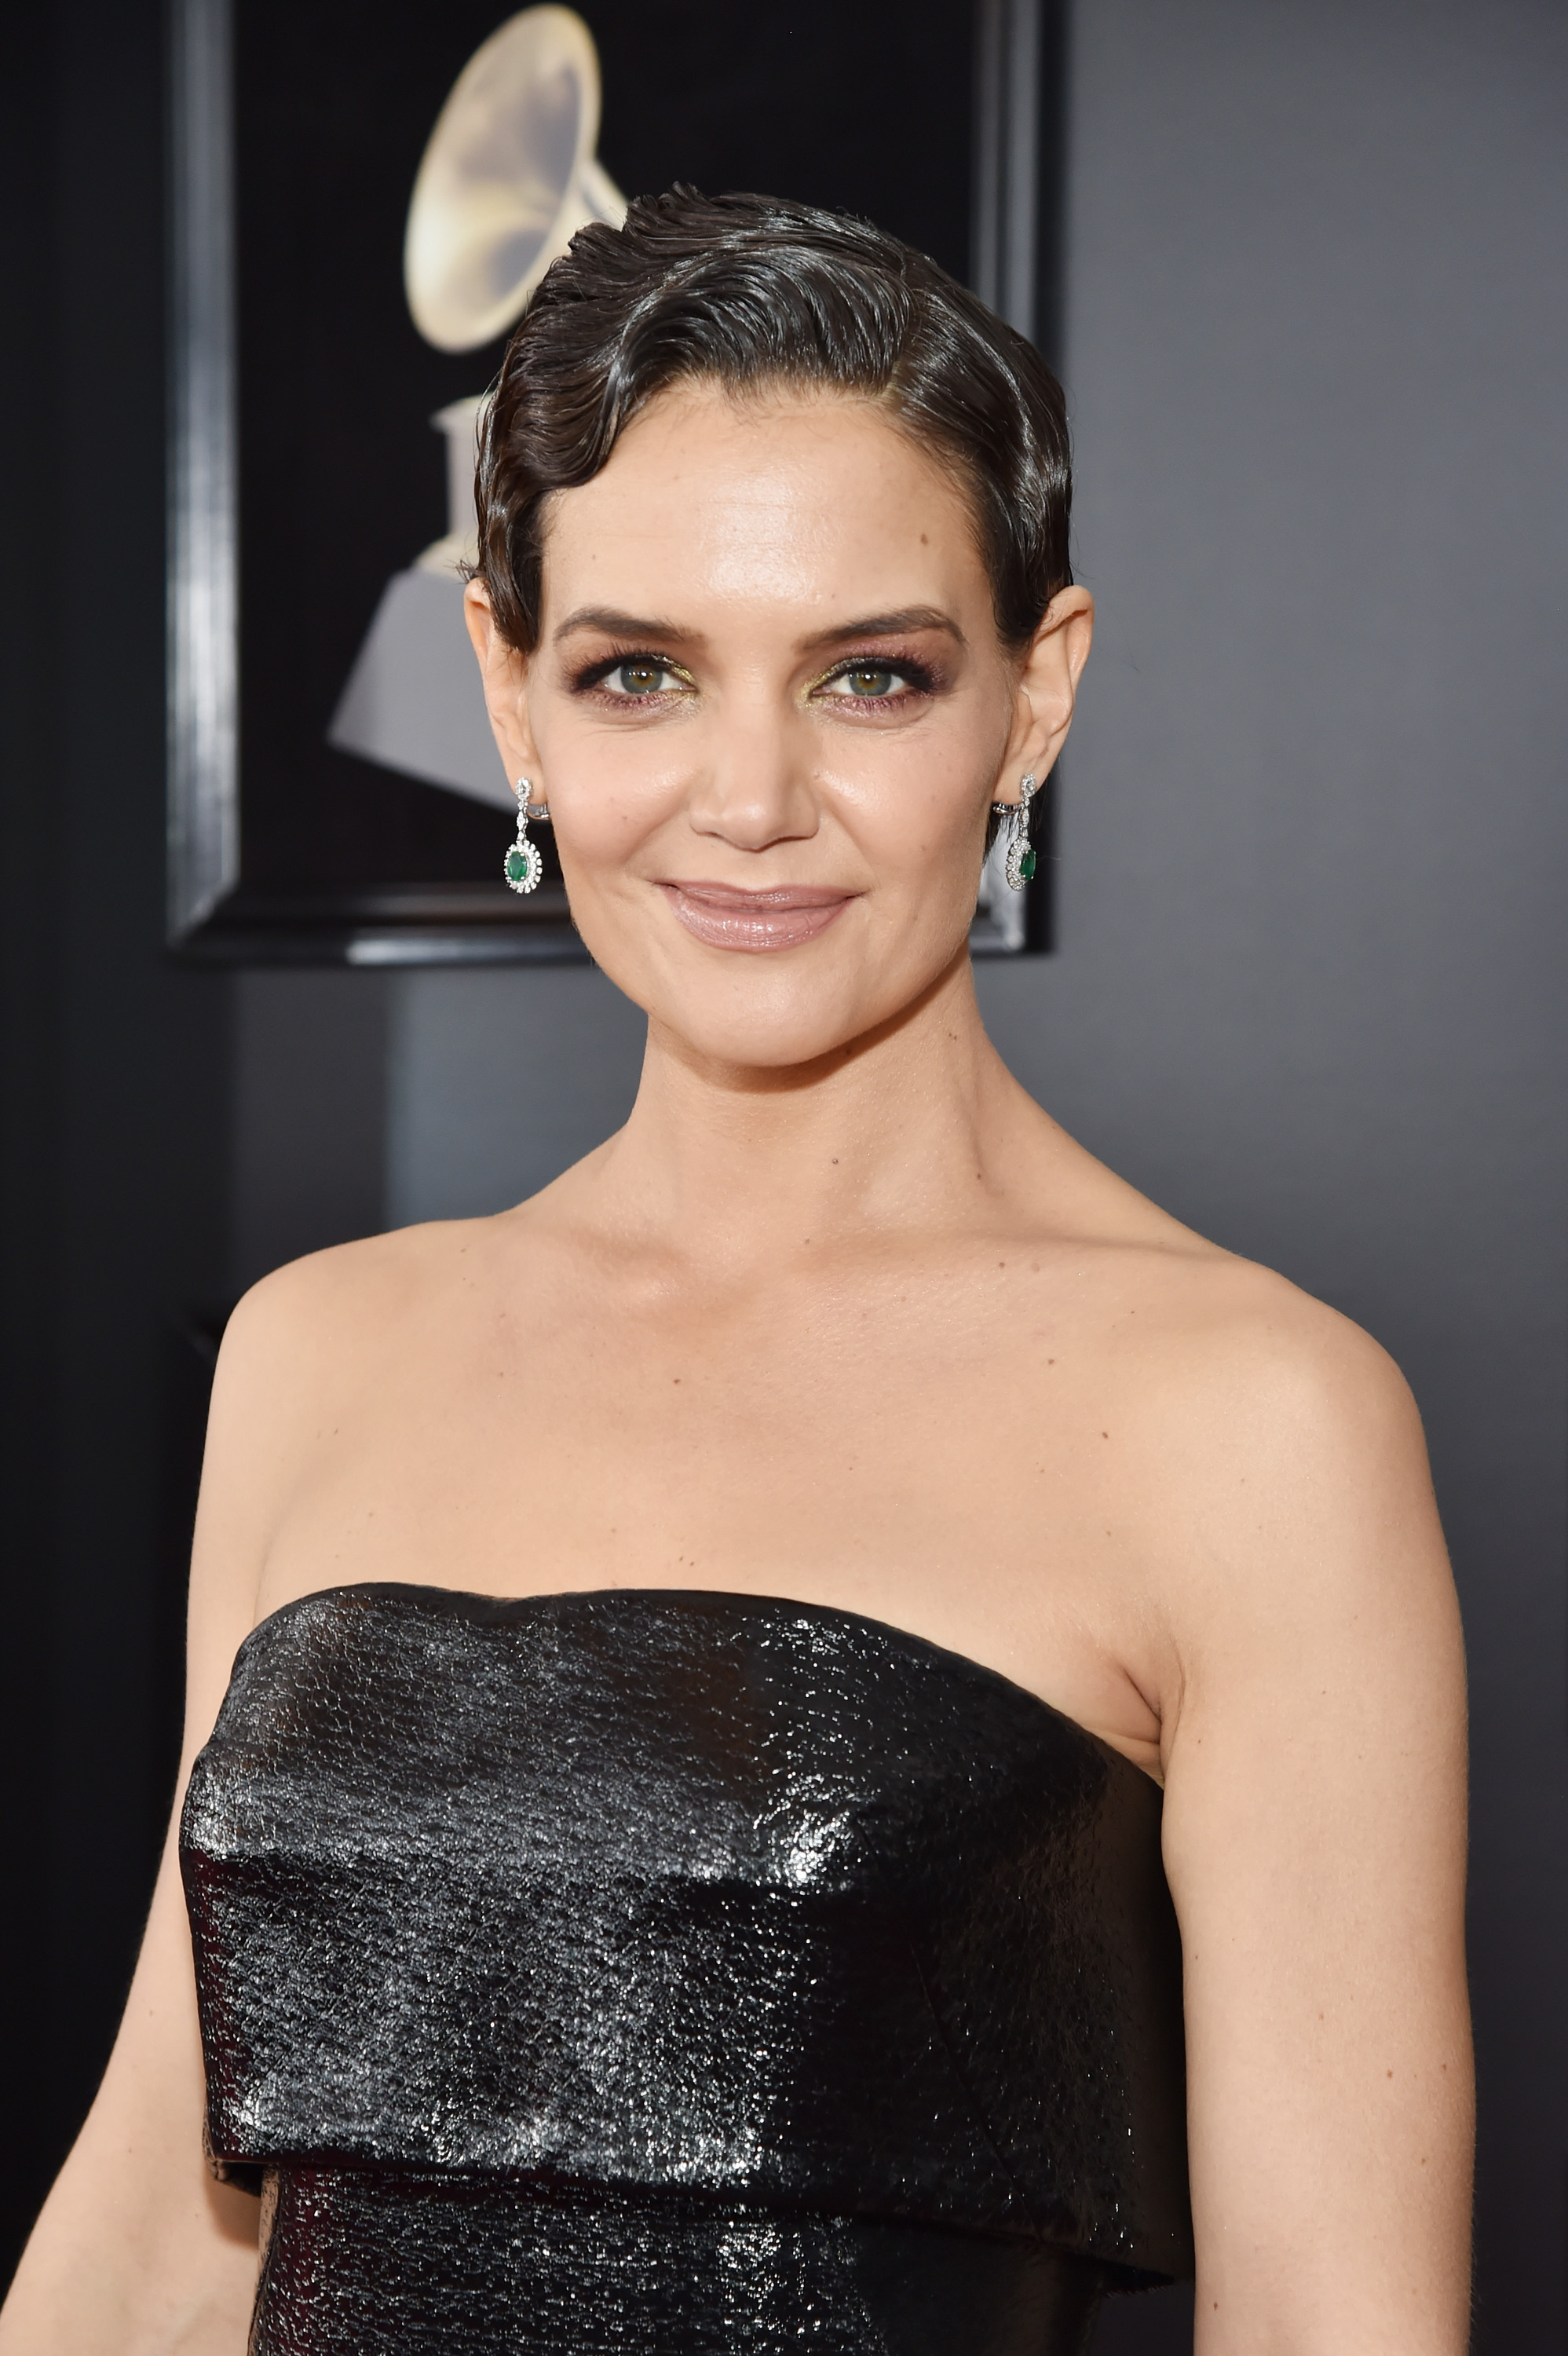 Katie Holmes Pixie Hairstyle Is The Short Hair Trend For